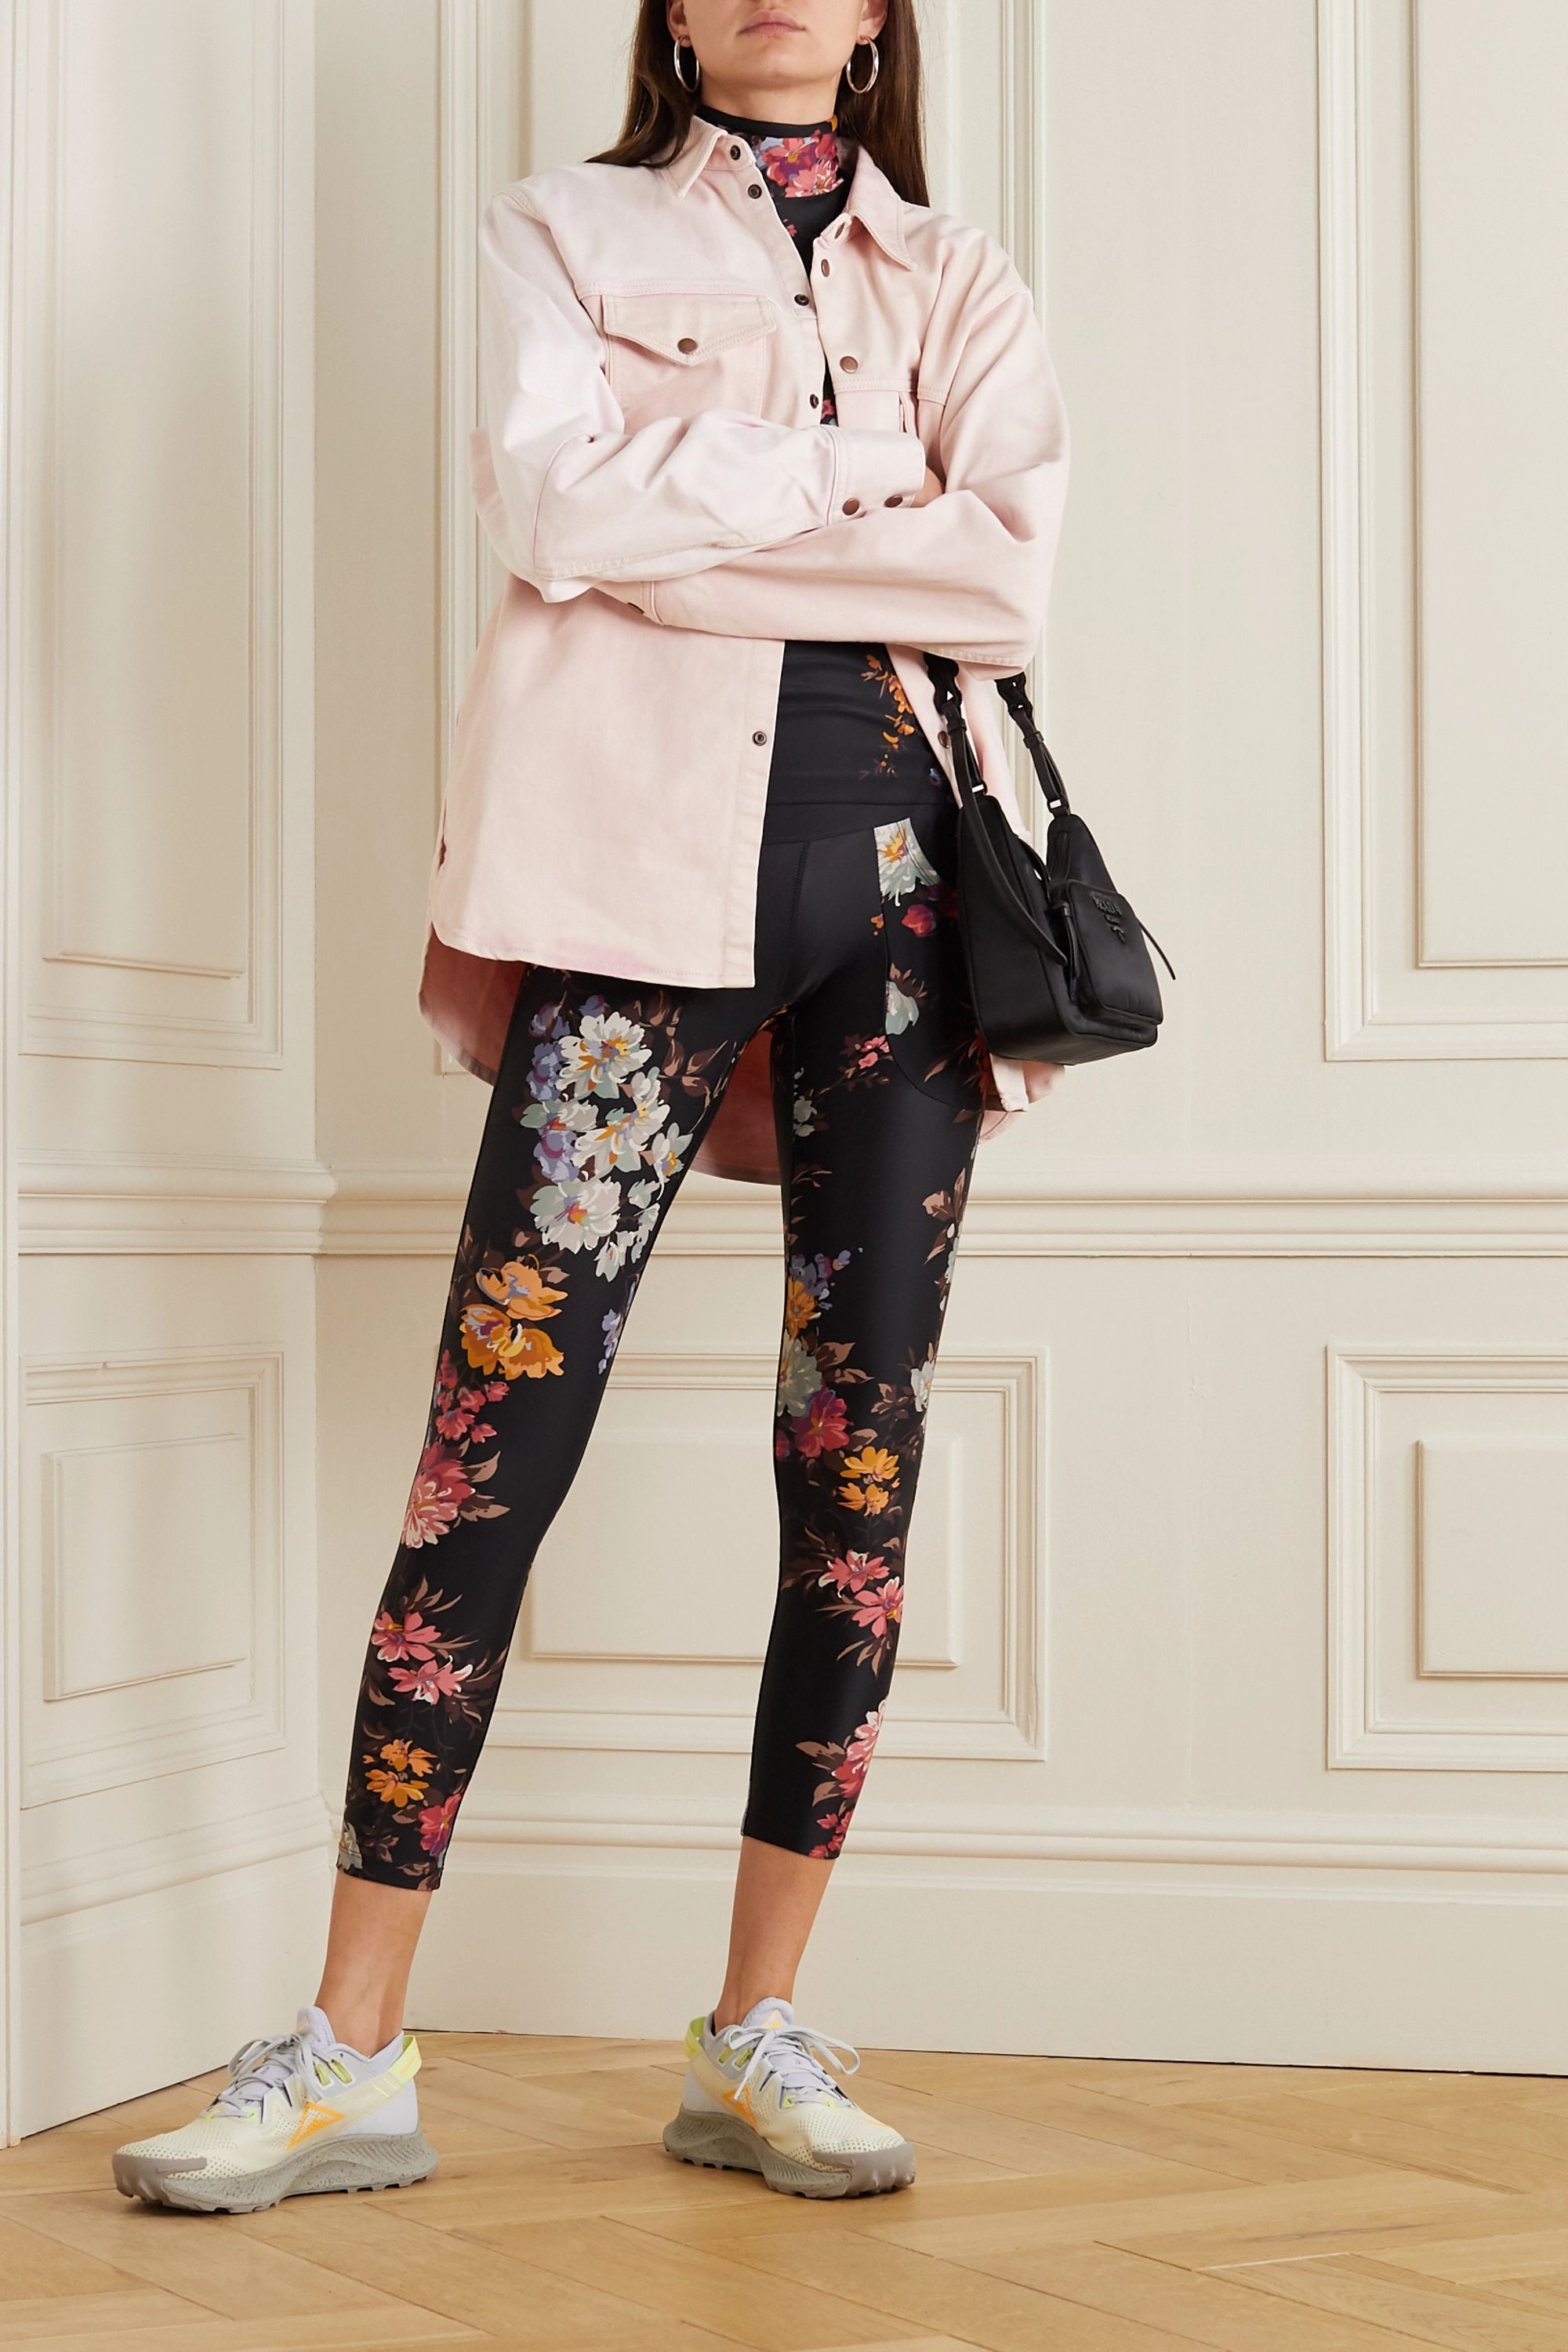 Twin Fantasy Paneled floral-print stretch leggings